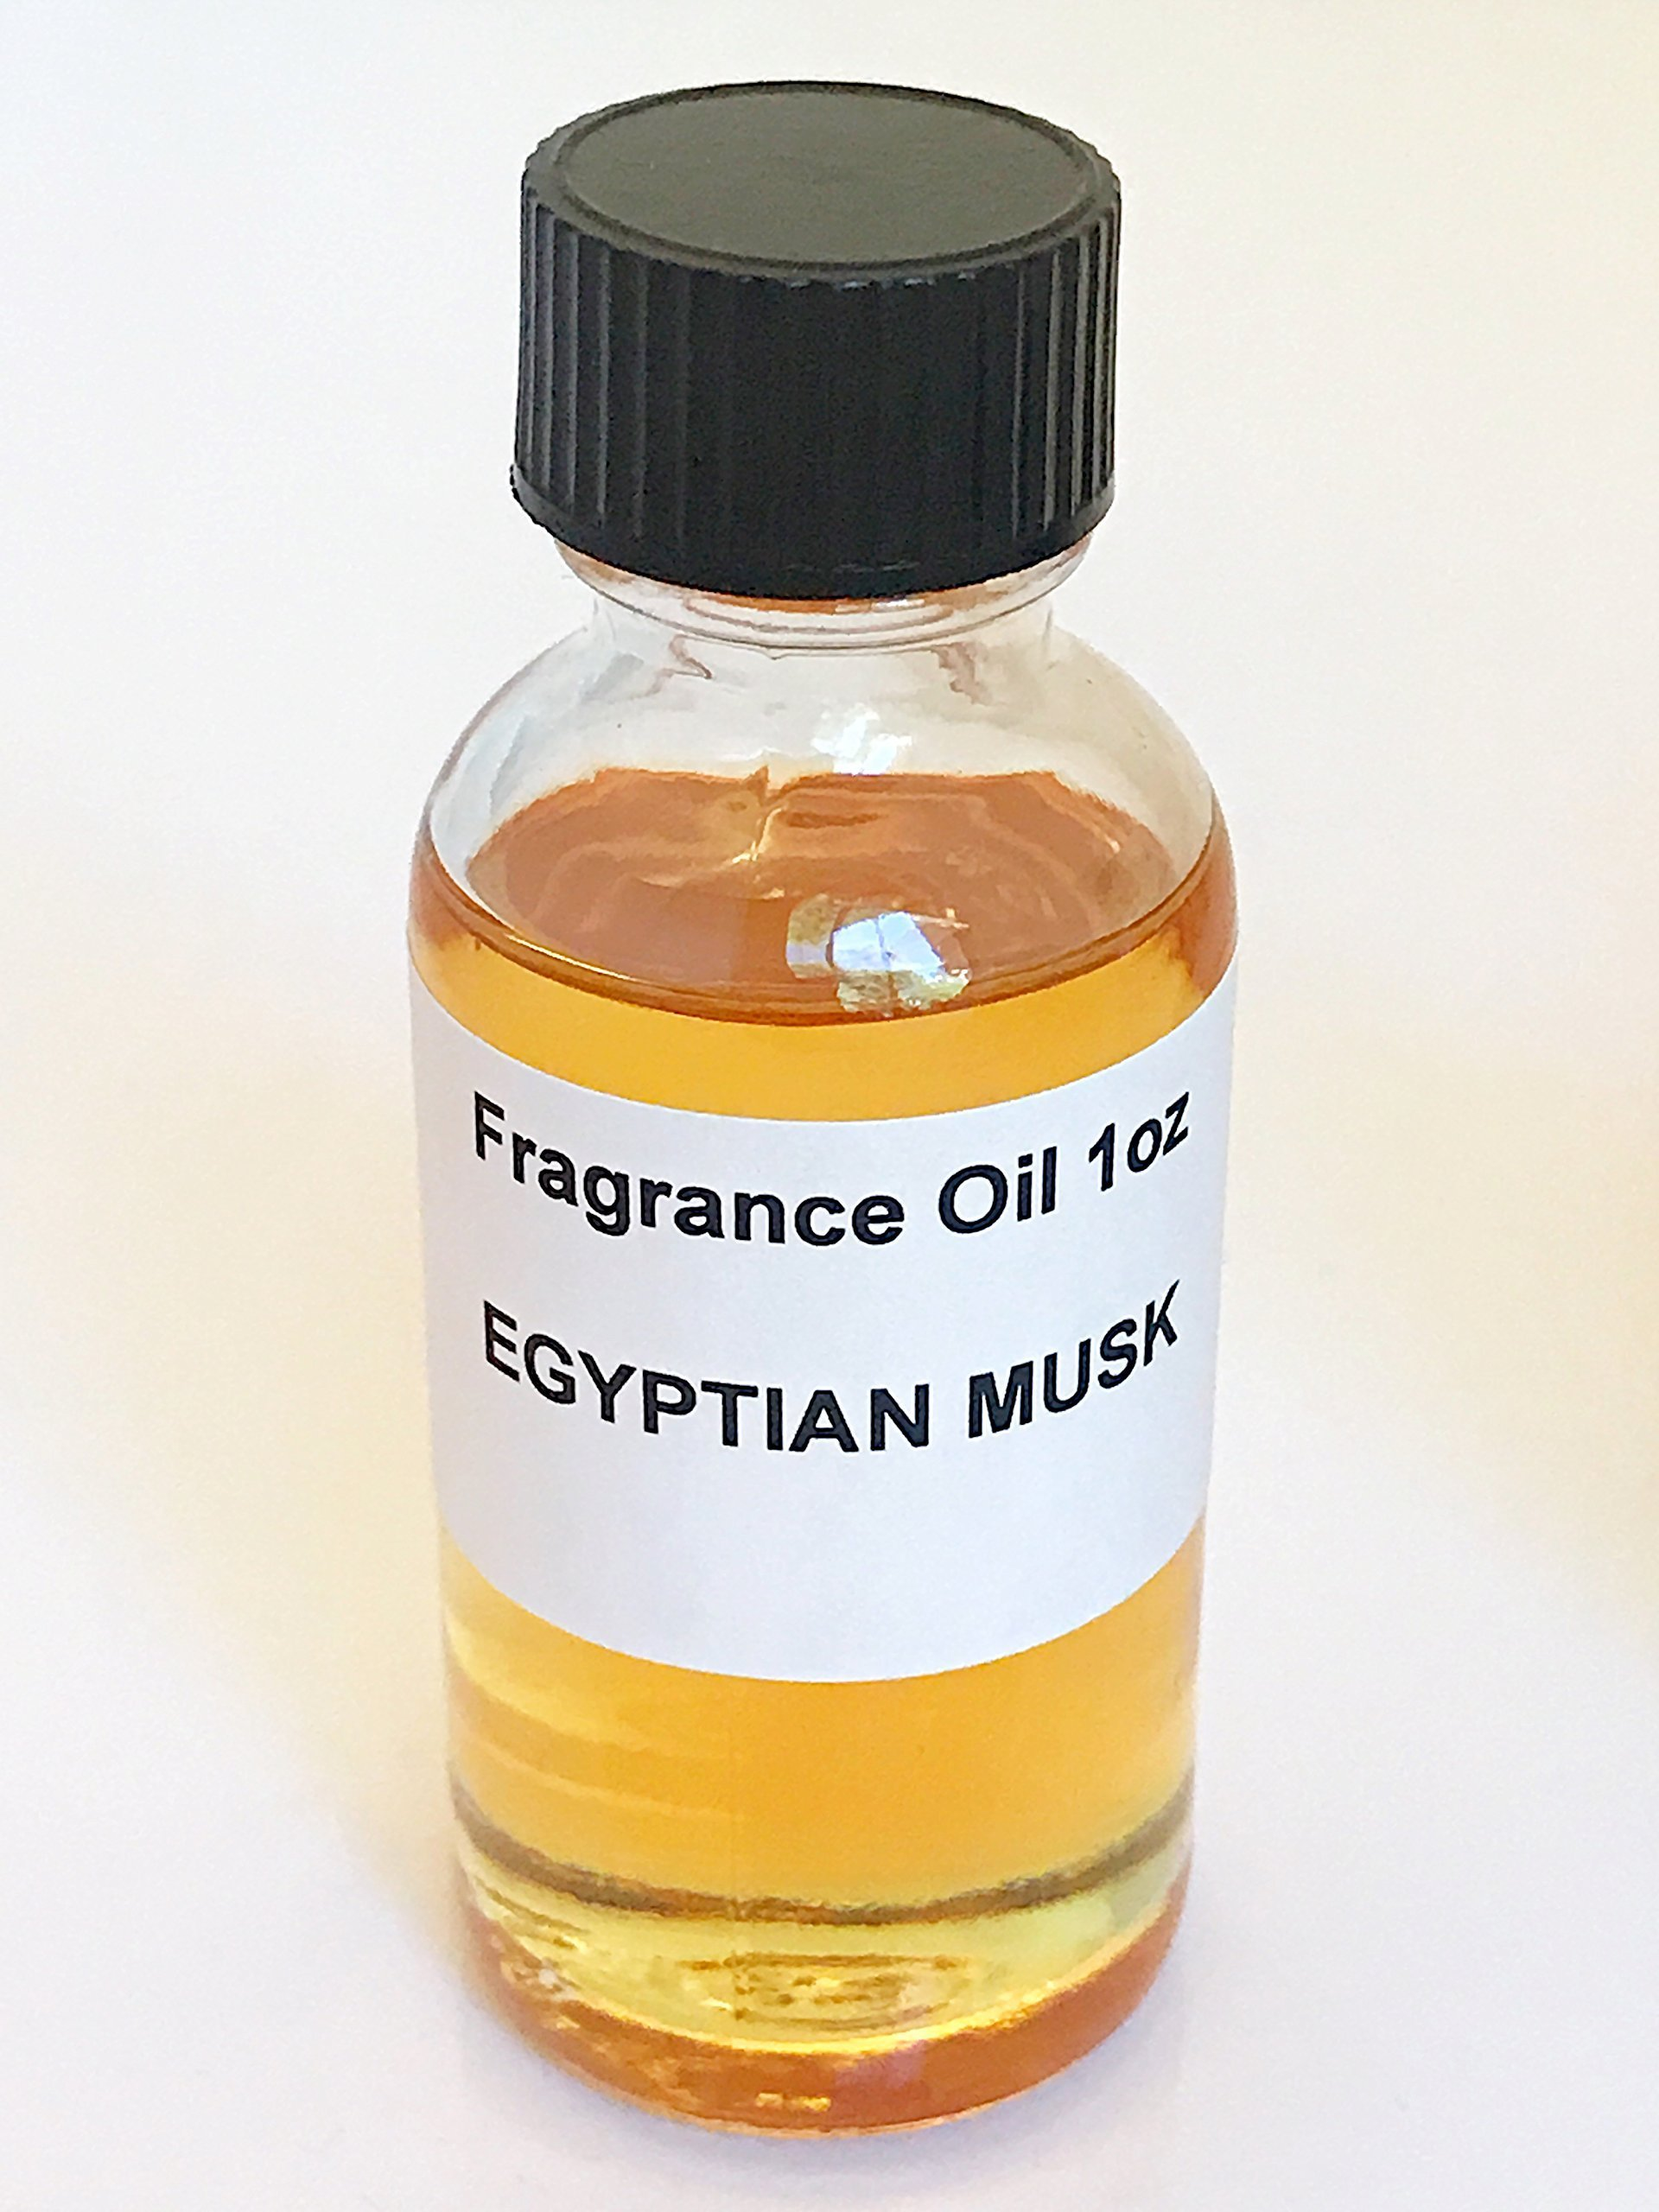 Fragrance Oil Egyptian Musk Body Oil Made in the USA